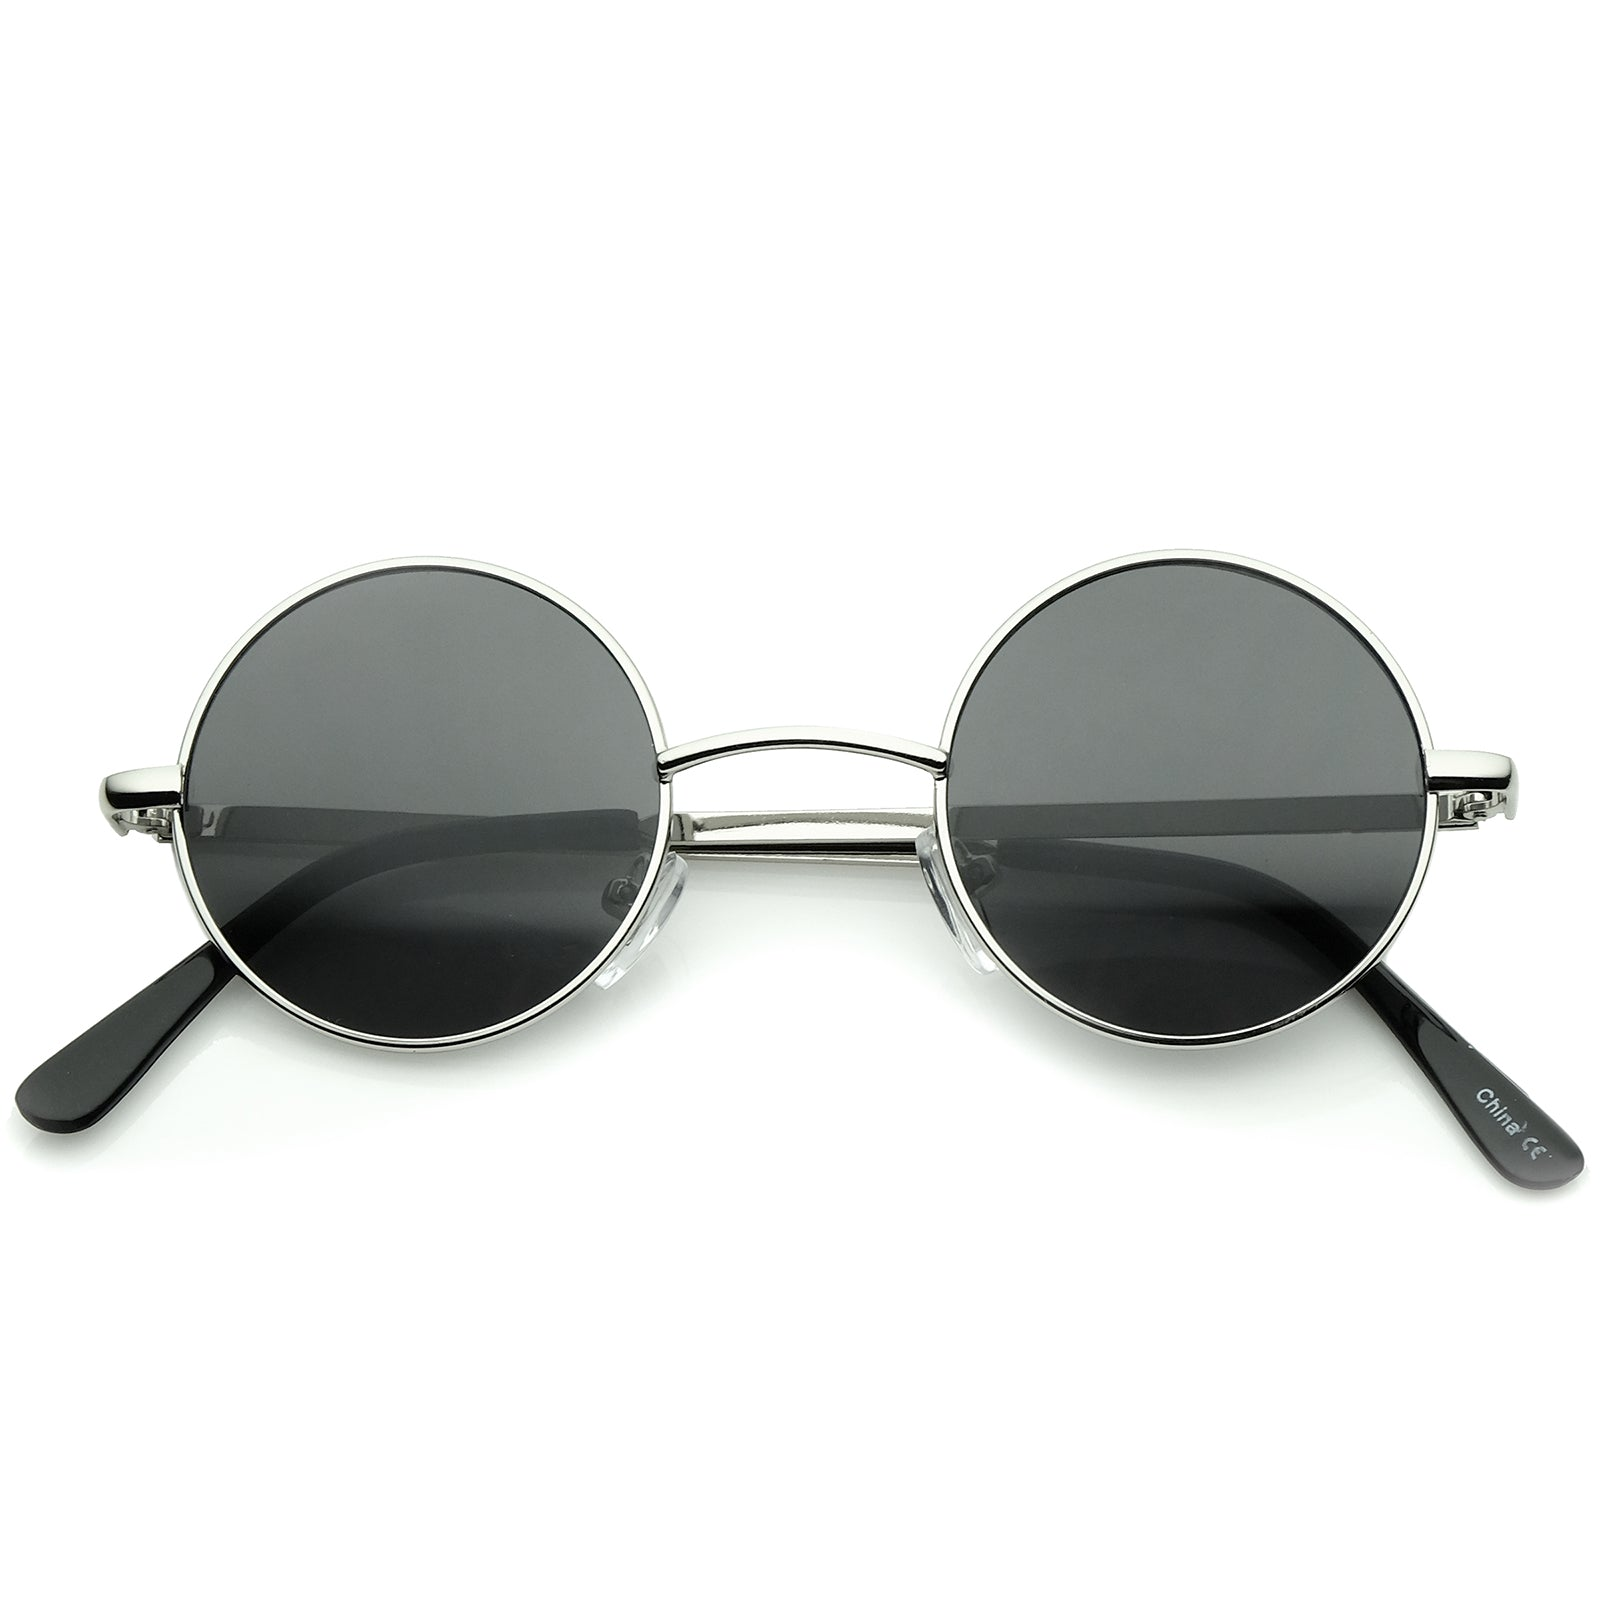 cec199dbb2a7 Small Retro Lennon Inspired Style Neutral-Colored Lens Round Metal ...